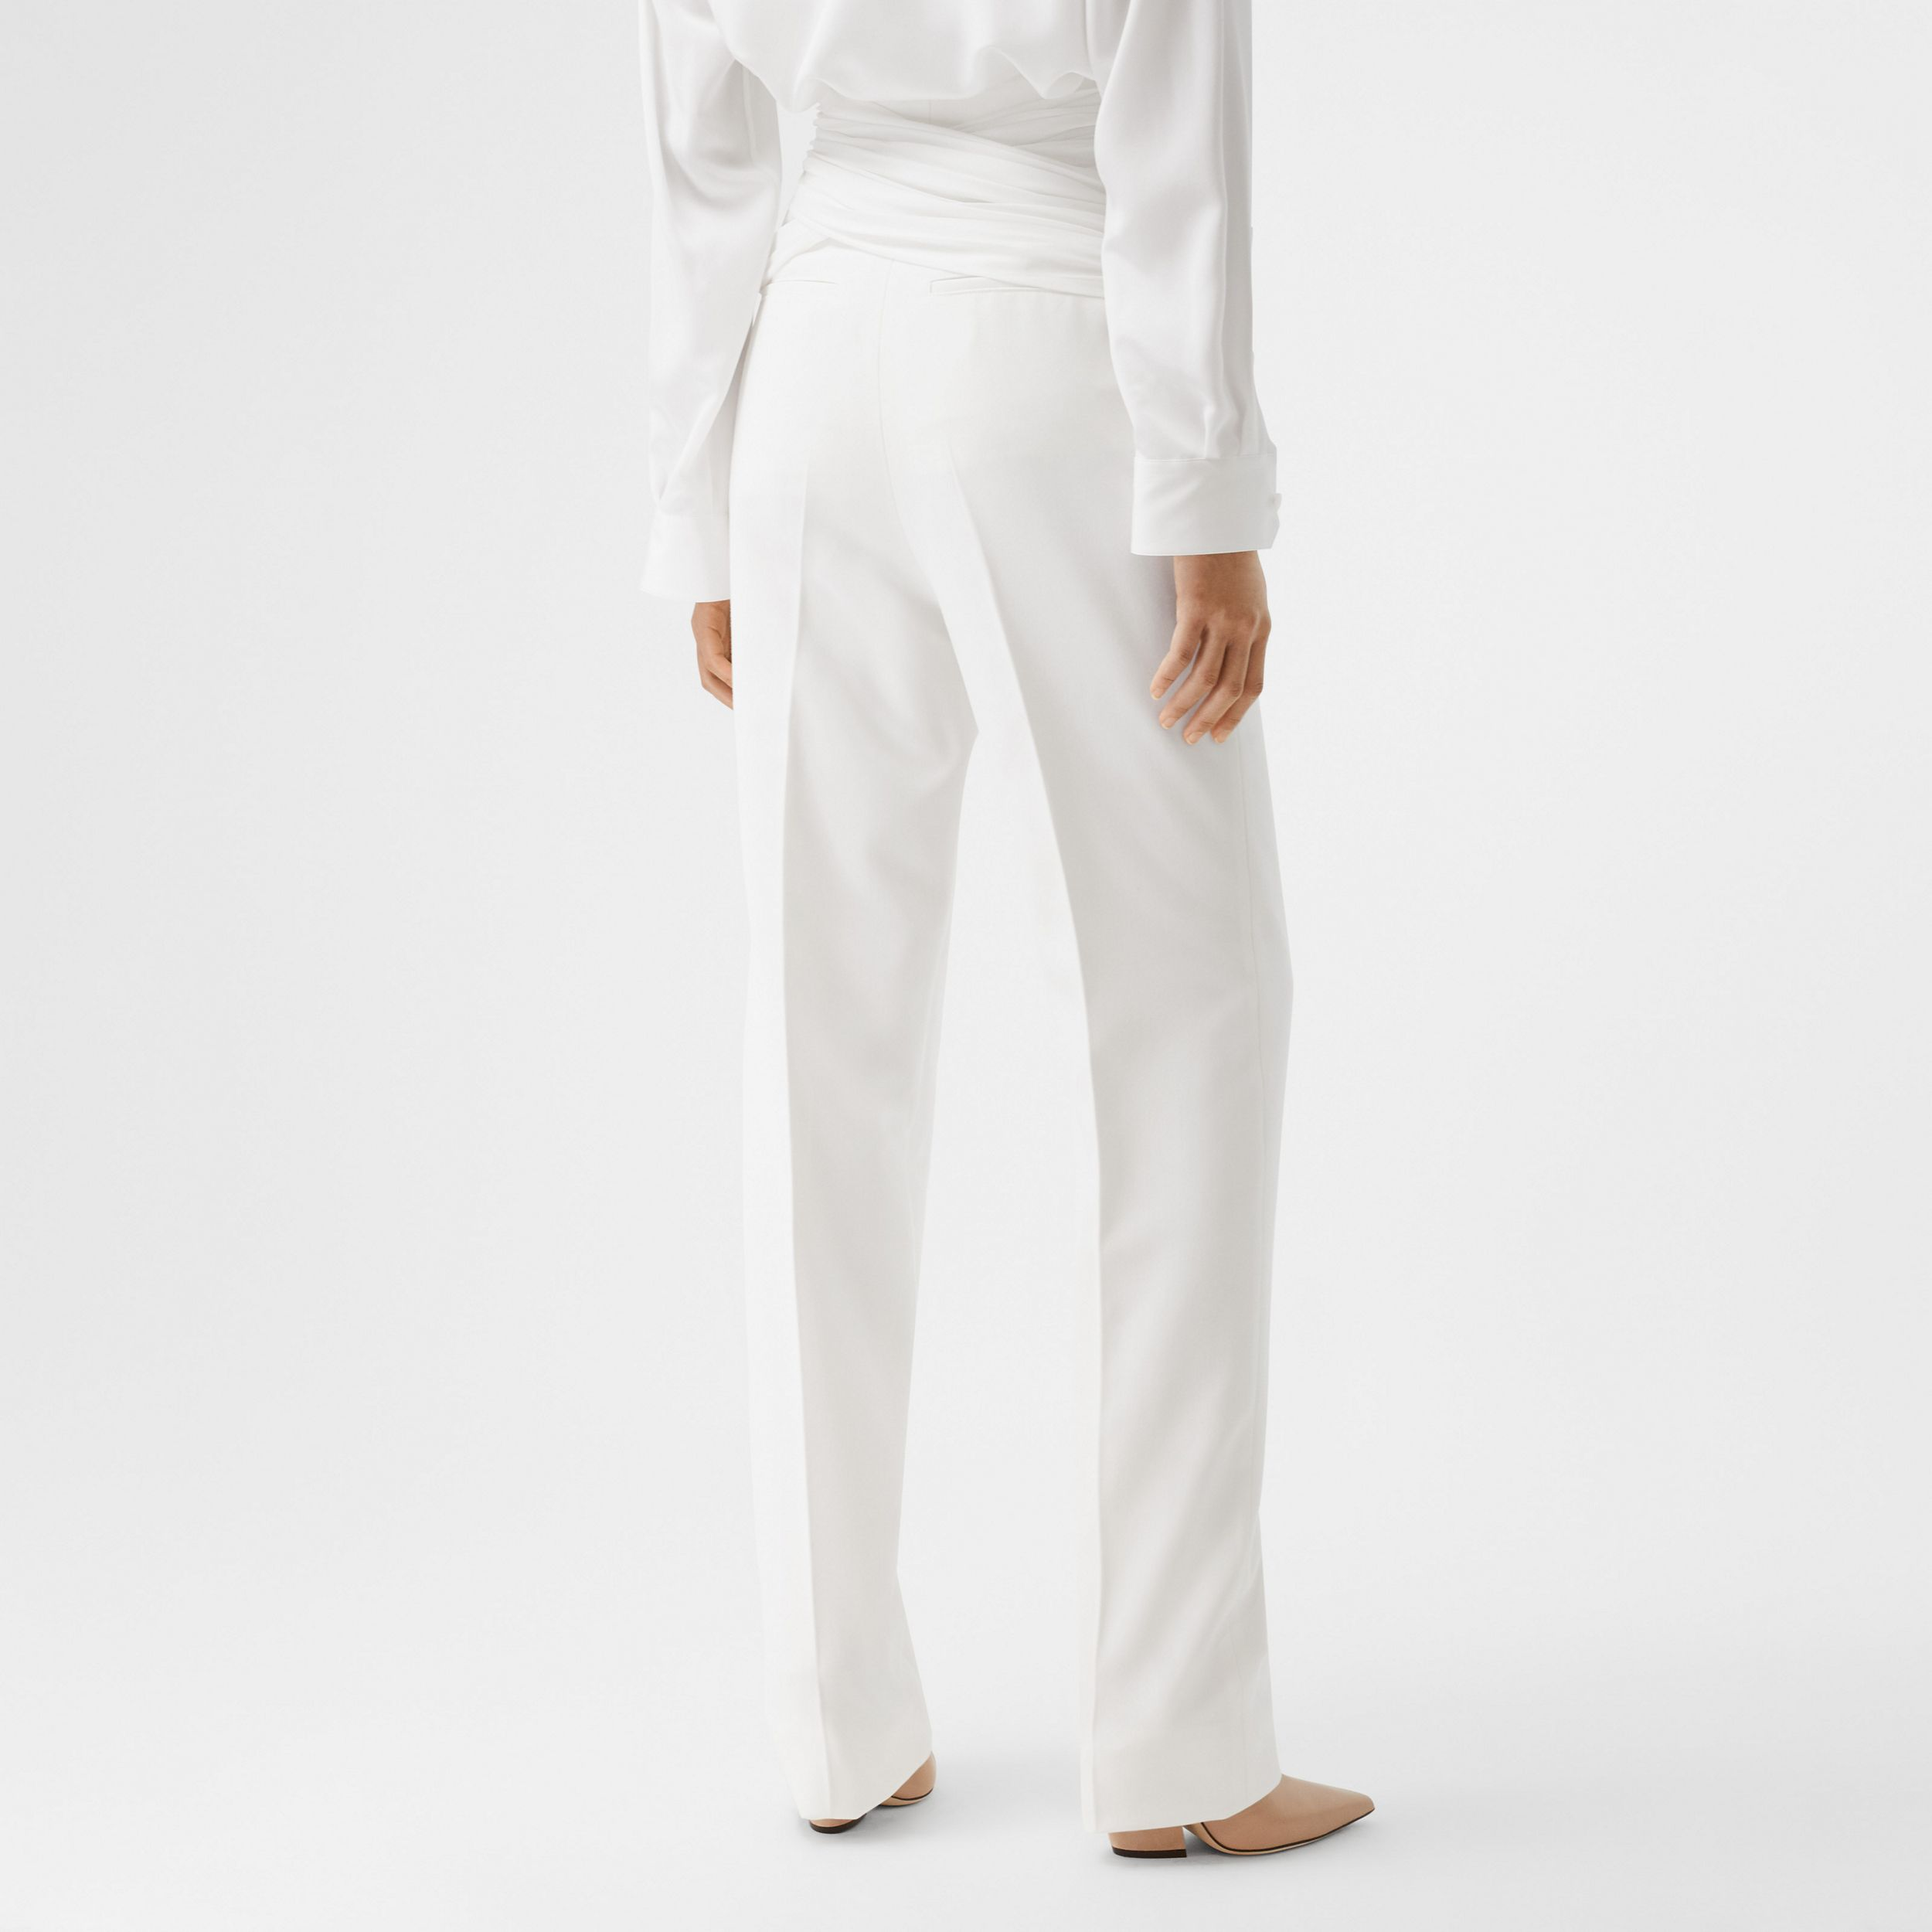 Sash Detail Technical Wool Tailored Trousers in Optic White - Women | Burberry Singapore - 3